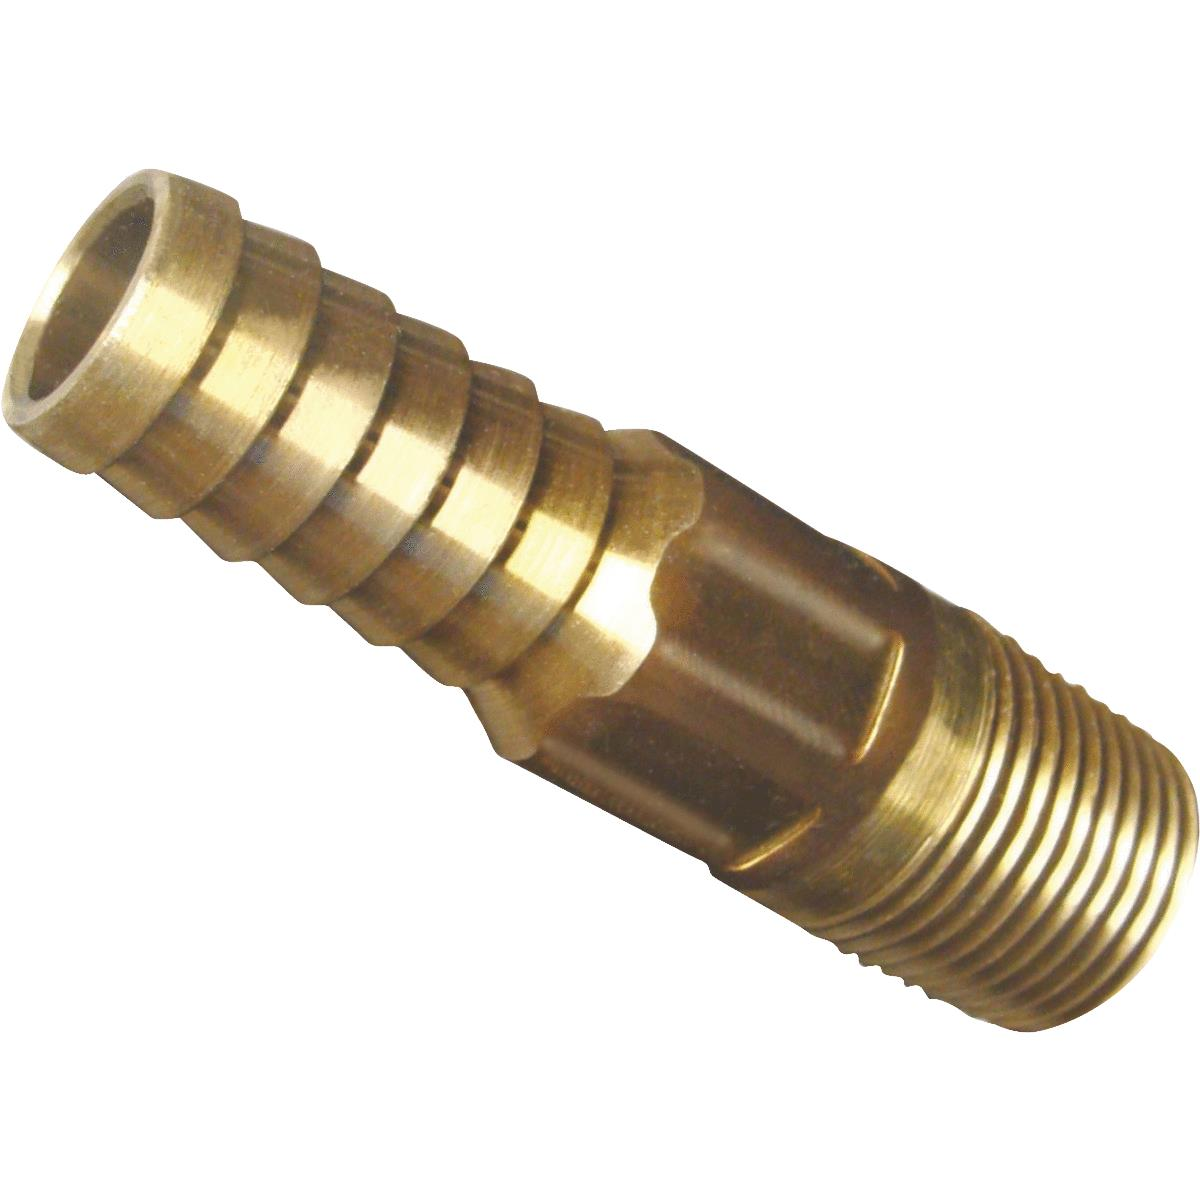 SIMMONS MFG CO MAB-2 Low Lead Red Brass Insert Adapter 1//2 Inch 460977